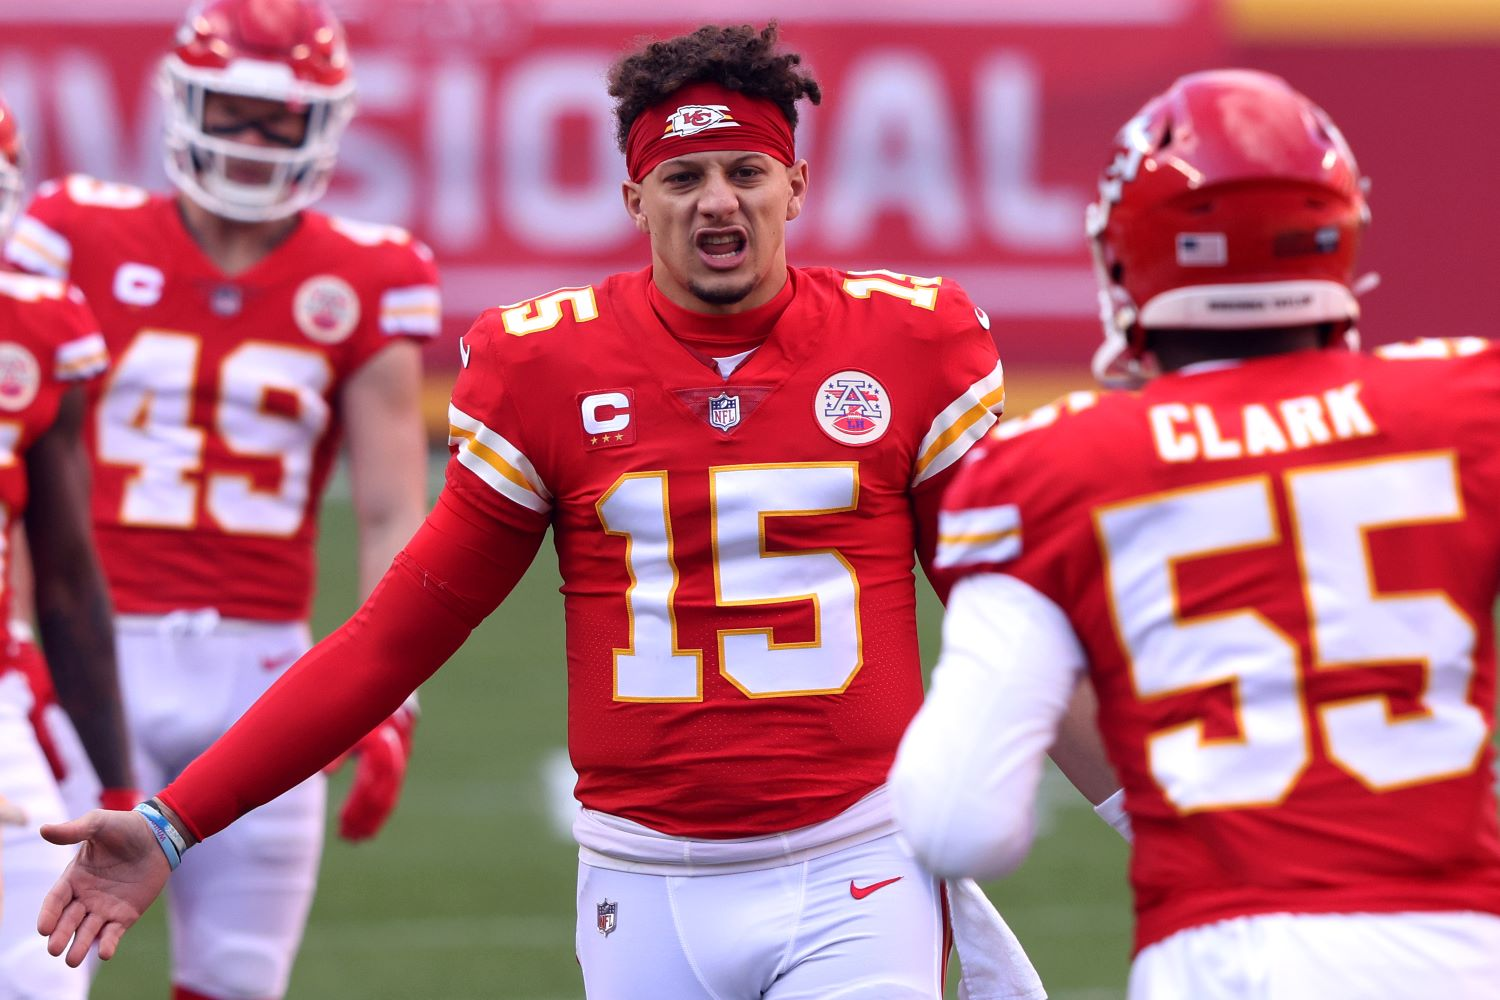 The Patrick Mahomes Injury Situation Just Took a Game-Changing Turn for the Kansas City Chiefs